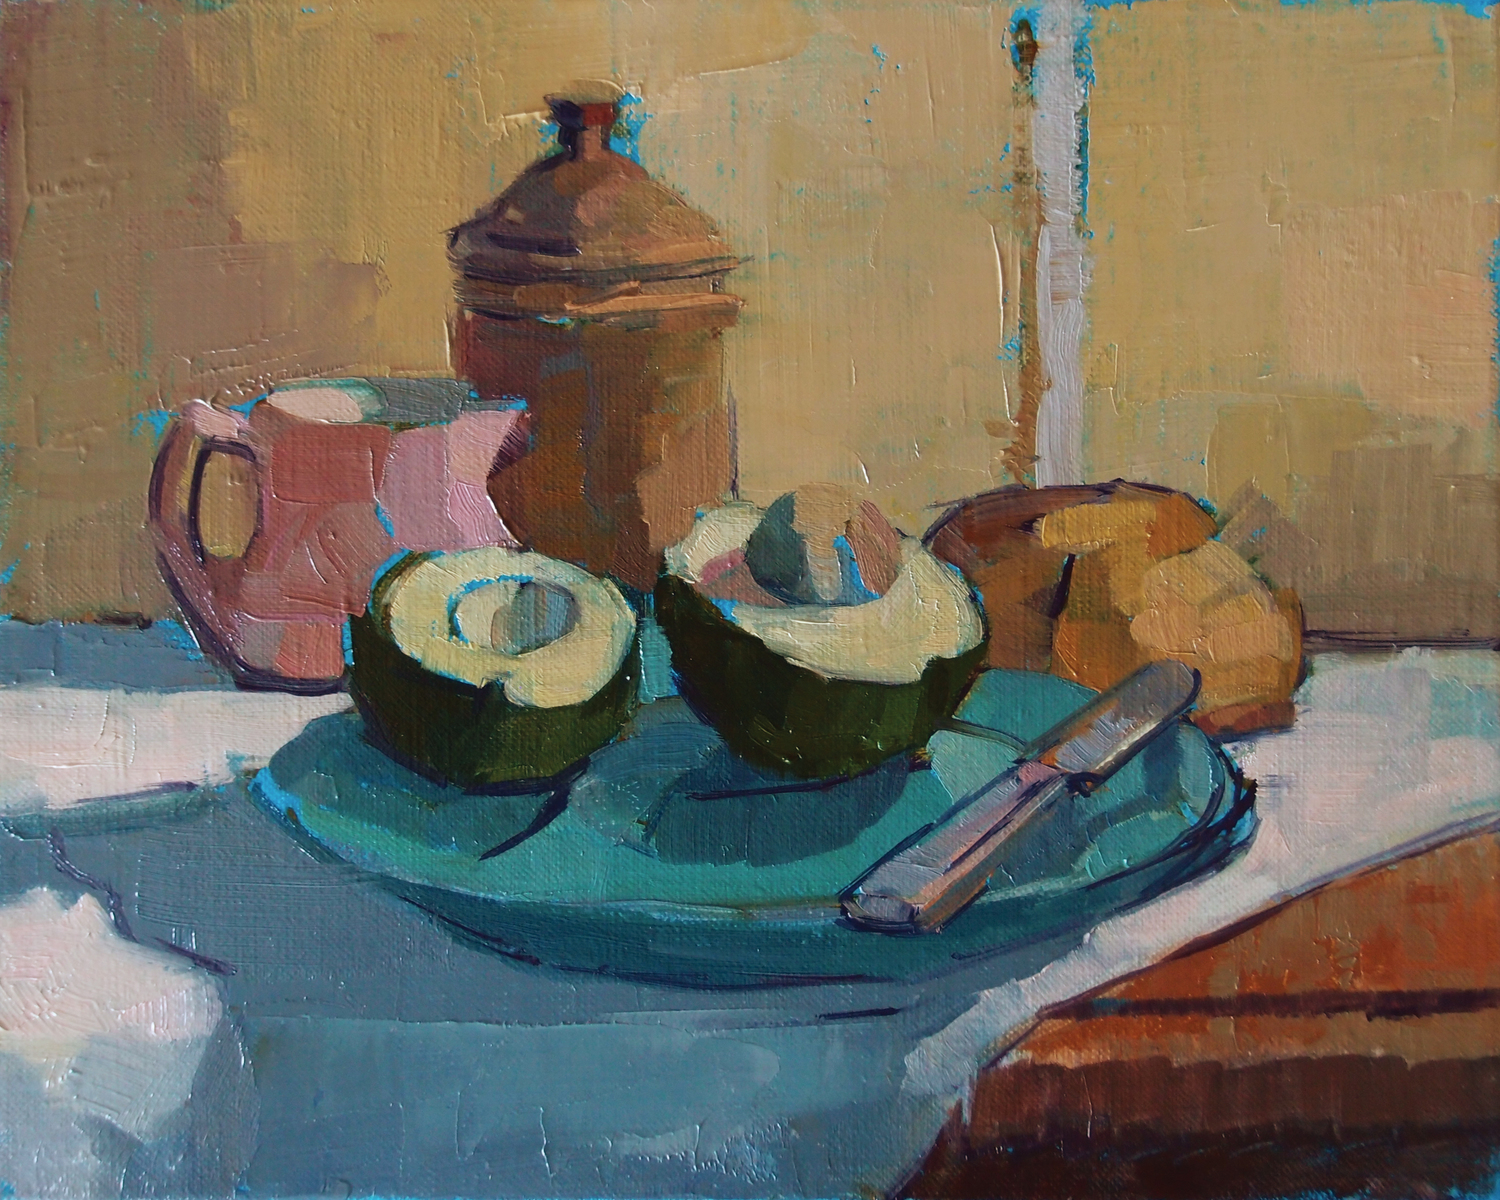 "Avocado, 2014, oil on linen, 8"" x 10"""